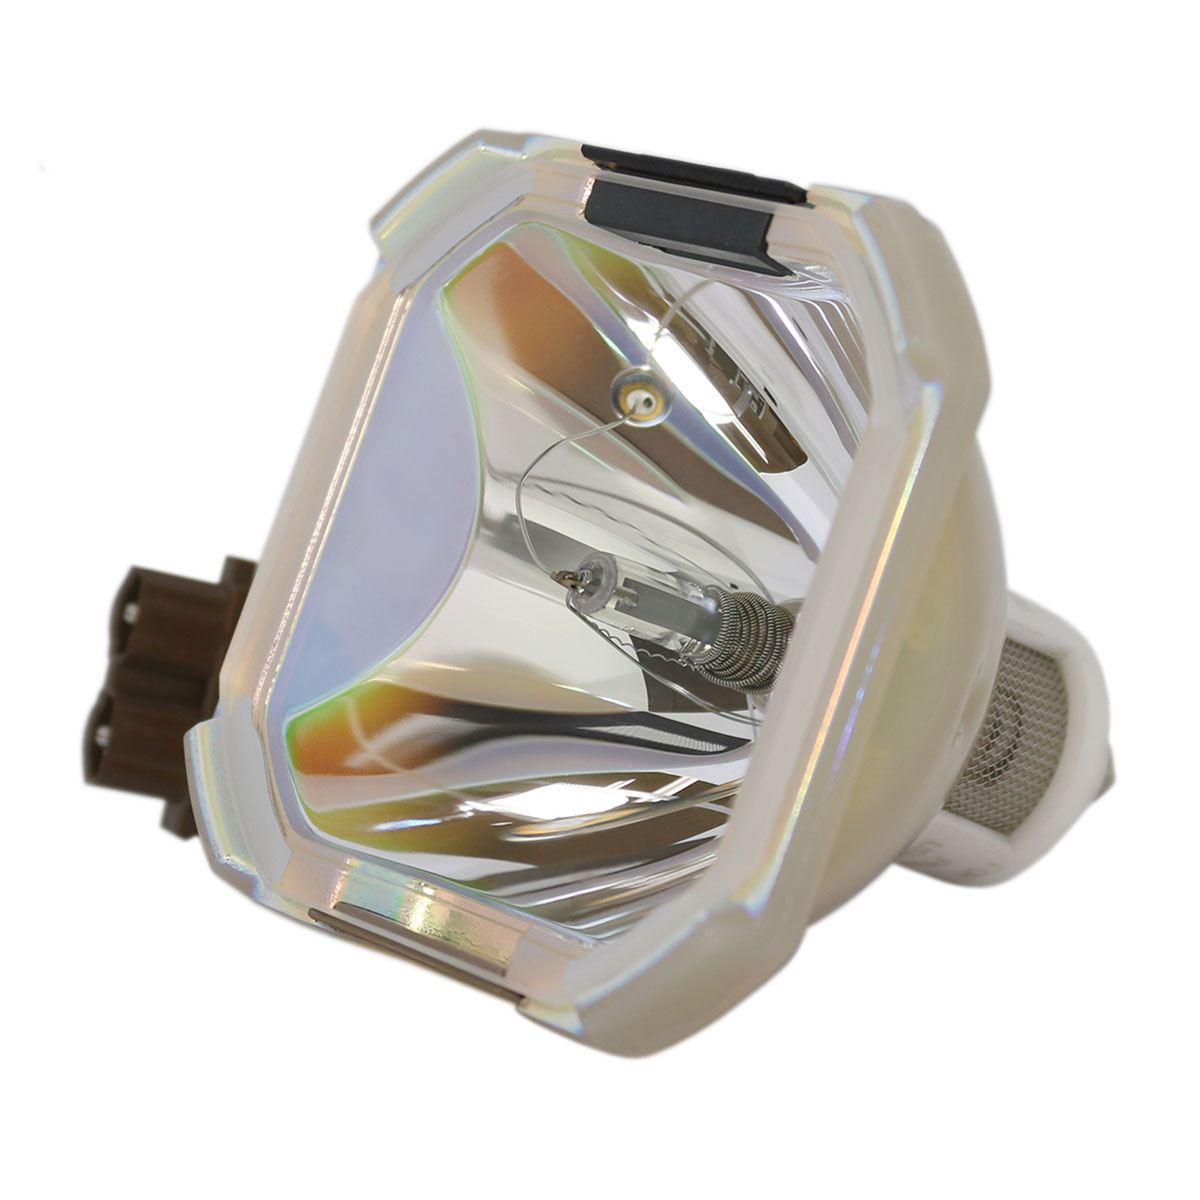 Compatible Bare Bulb LV-LP22 9924A001 for Canon LV-7565 LV-7565E / LV-7565F Projector Lamp Bulb without housing